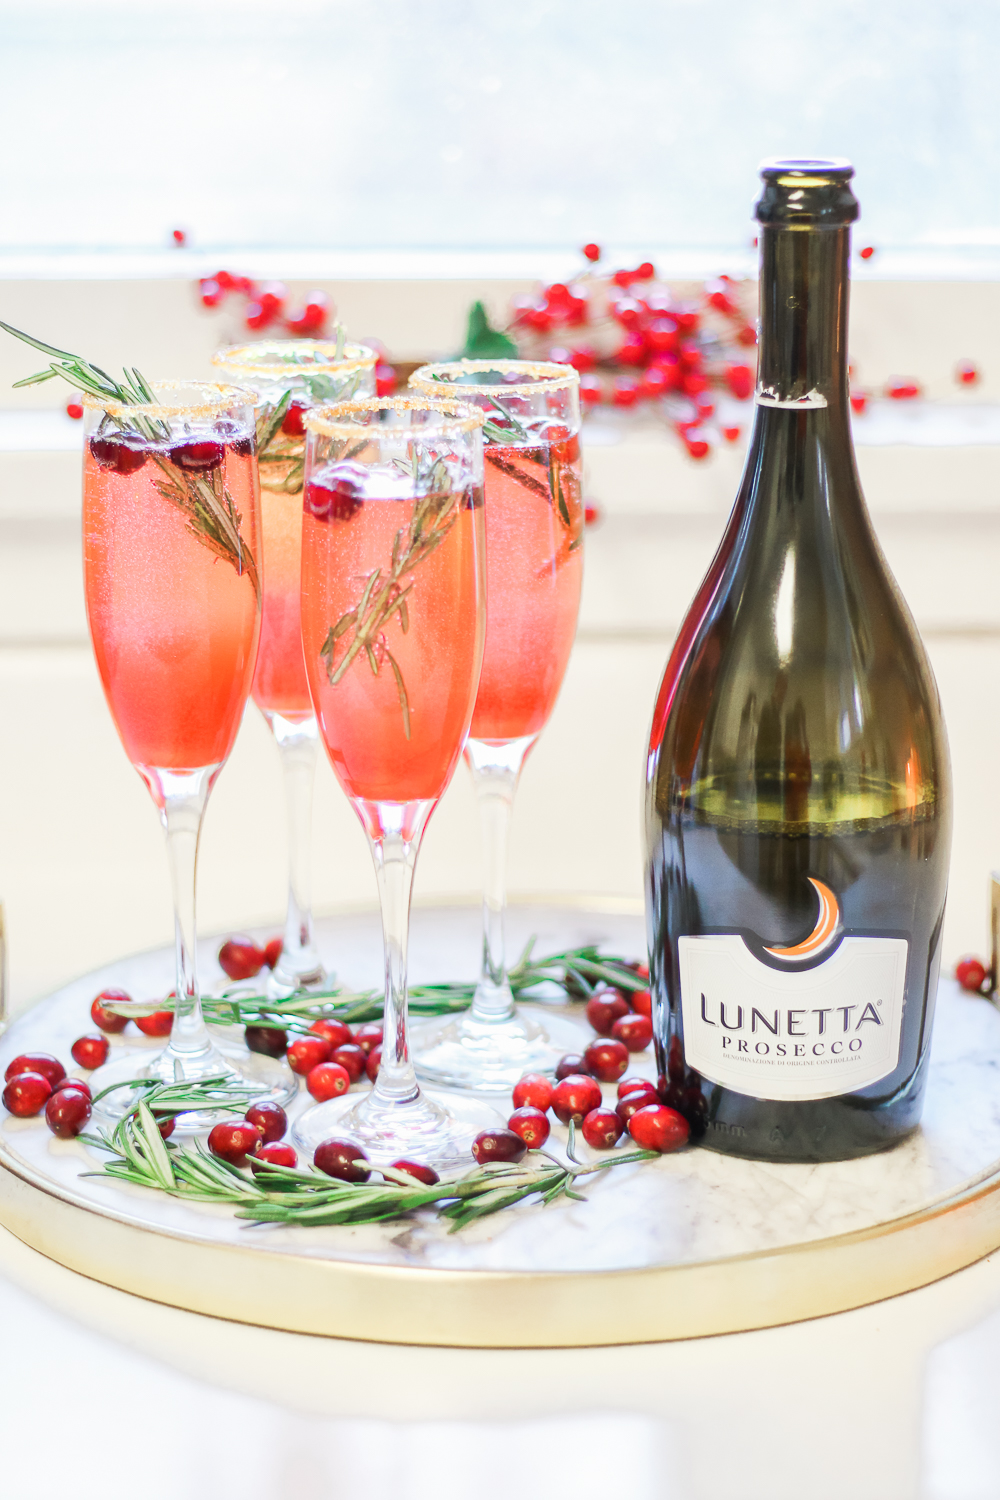 Ombré Cranberry Sparkler: A Cranberry Gin Cocktail for the Holidays by southern lifestyle blogger Stephanie Ziajka from Diary of a Debutante, Lunetta Prosecco review, fresh cranberry cocktail, red ombre cocktail